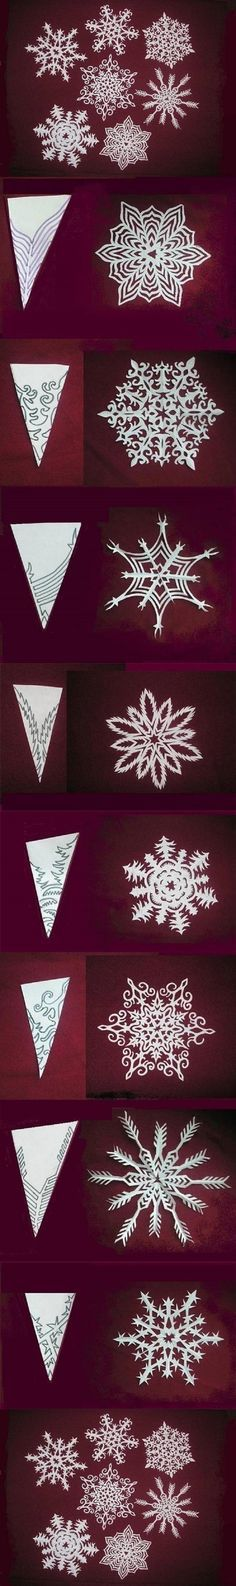 Wonderful DIY Paper Snowflakes With Pattern - 16 Winter Wonderland DIY Paper Decorations                                                                                                                                                                                 もっと見る